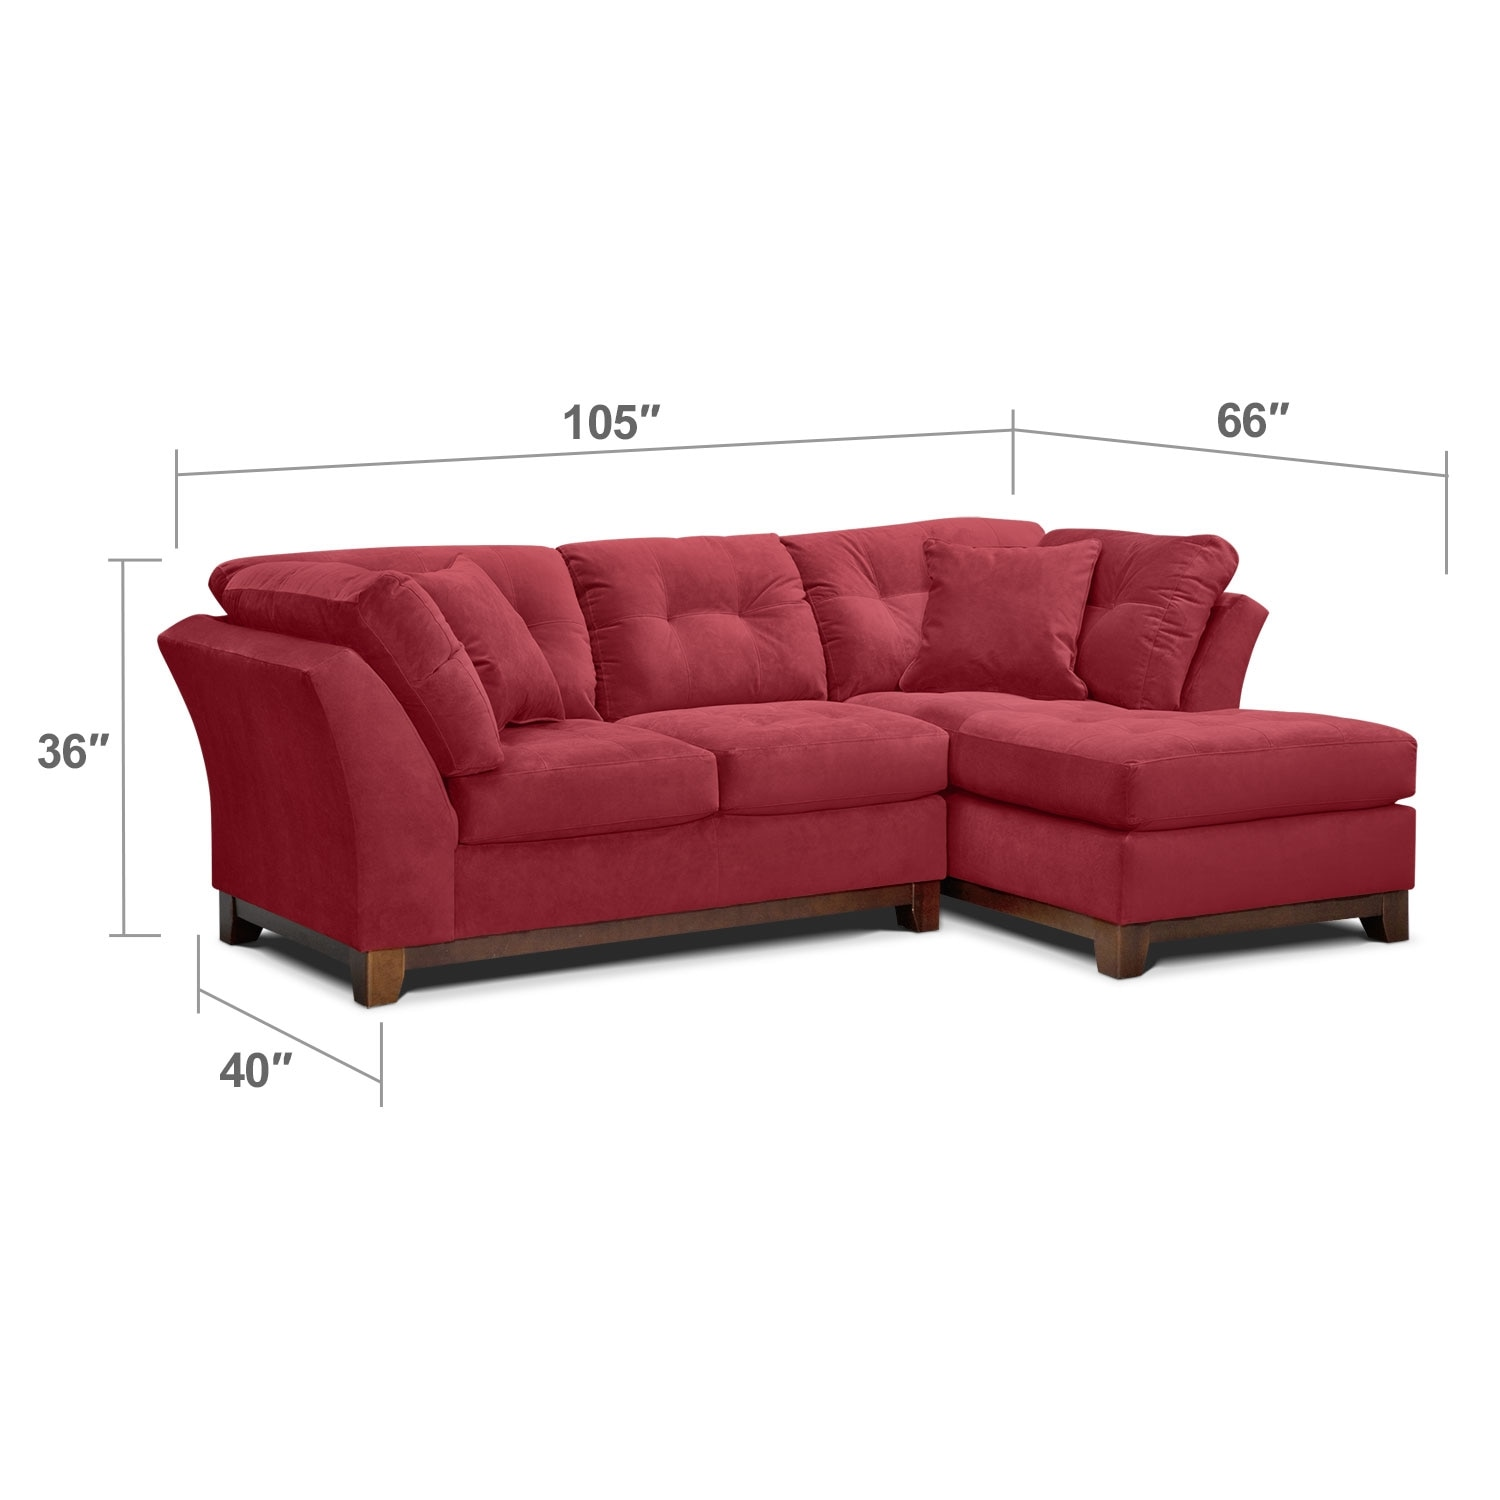 Living Room Furniture - Brookside II Poppy 2 Pc. Sectional (Alternate Reverse)